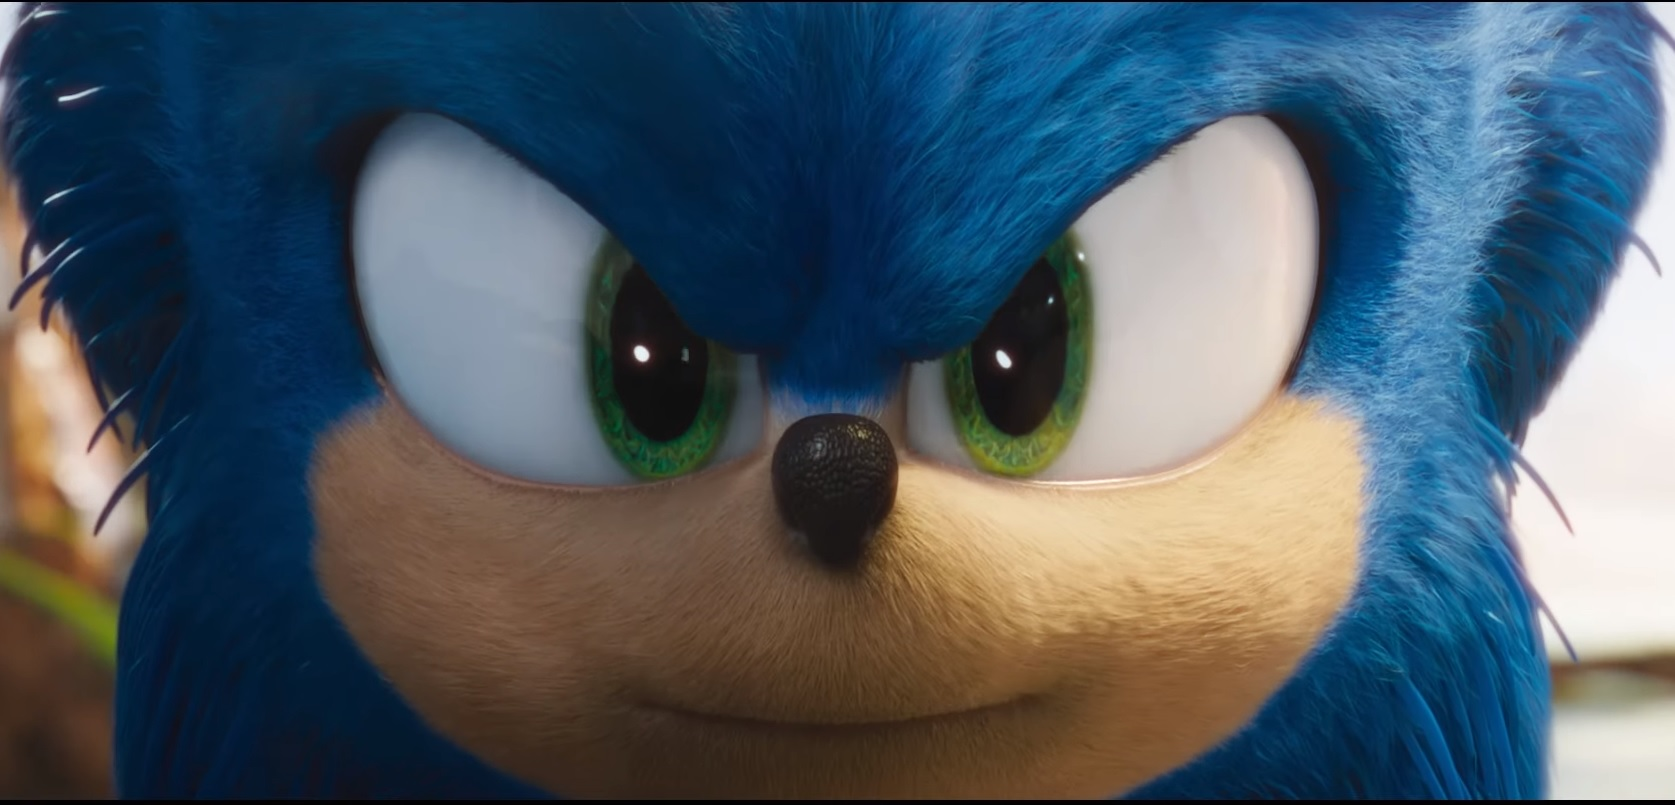 Sonic the Hedgehog 2 to hit theatres April 2022